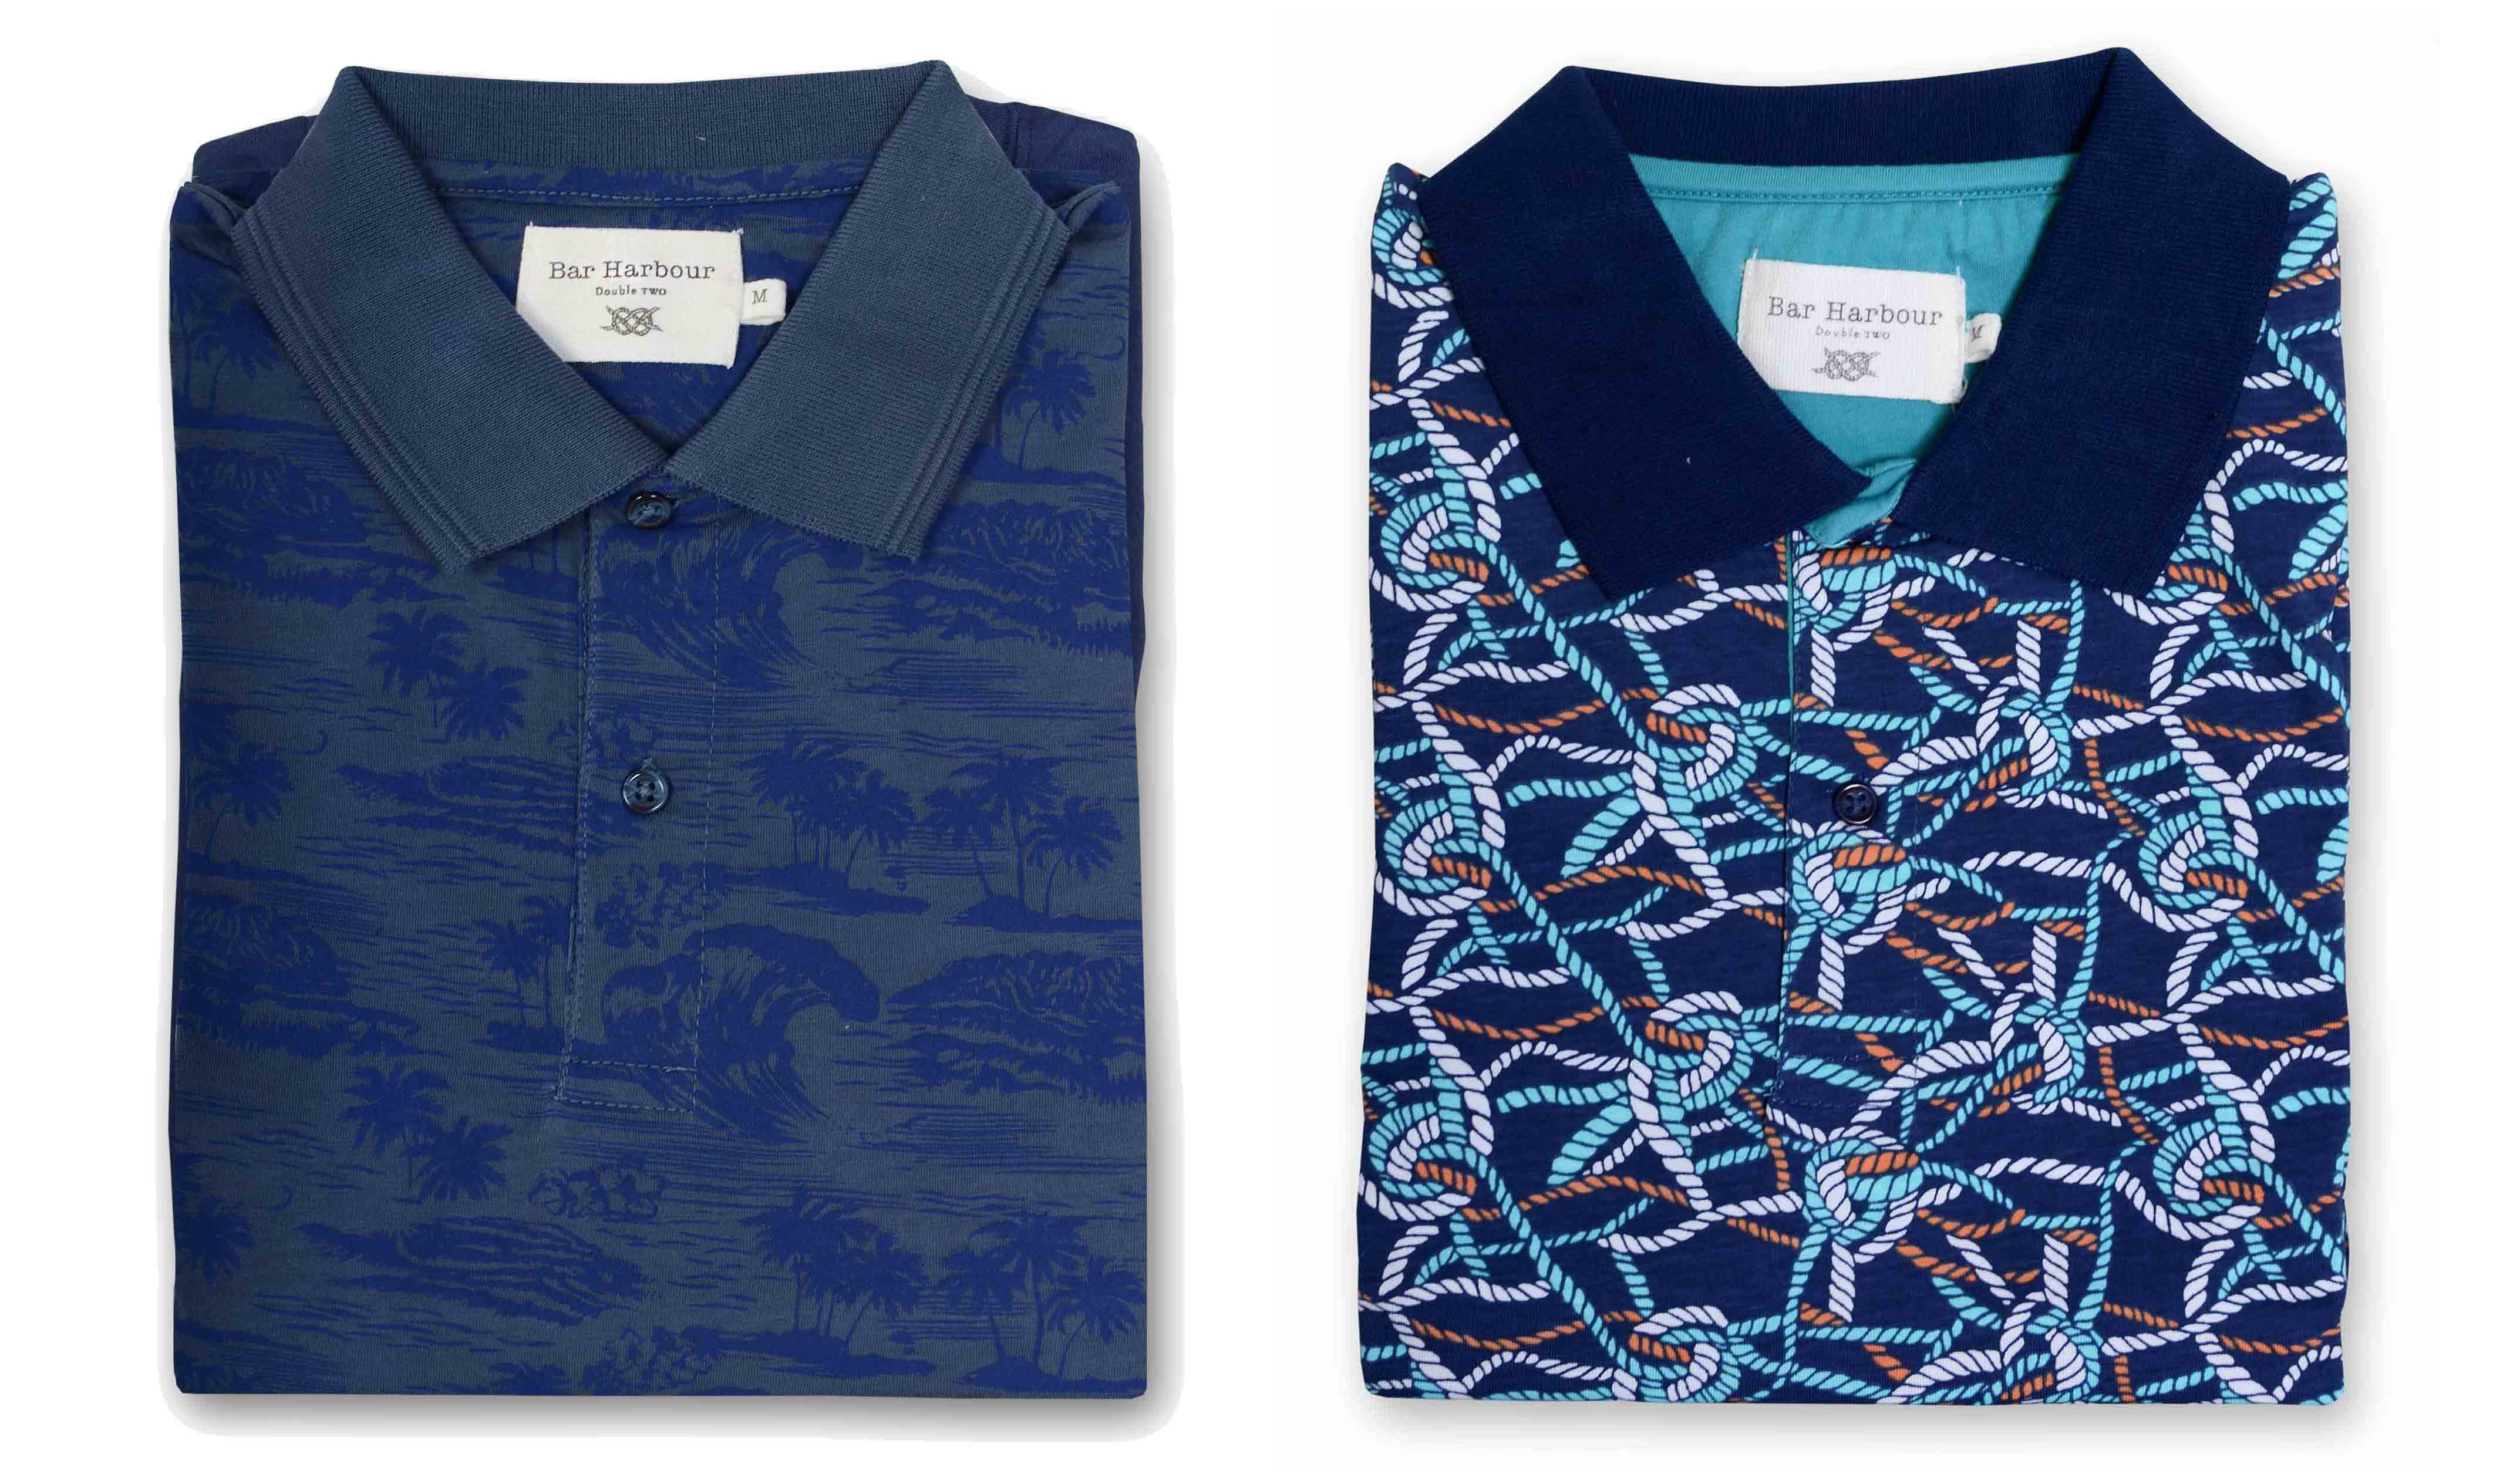 Patterned Wimbledon Tennis inspired Polo Shirts